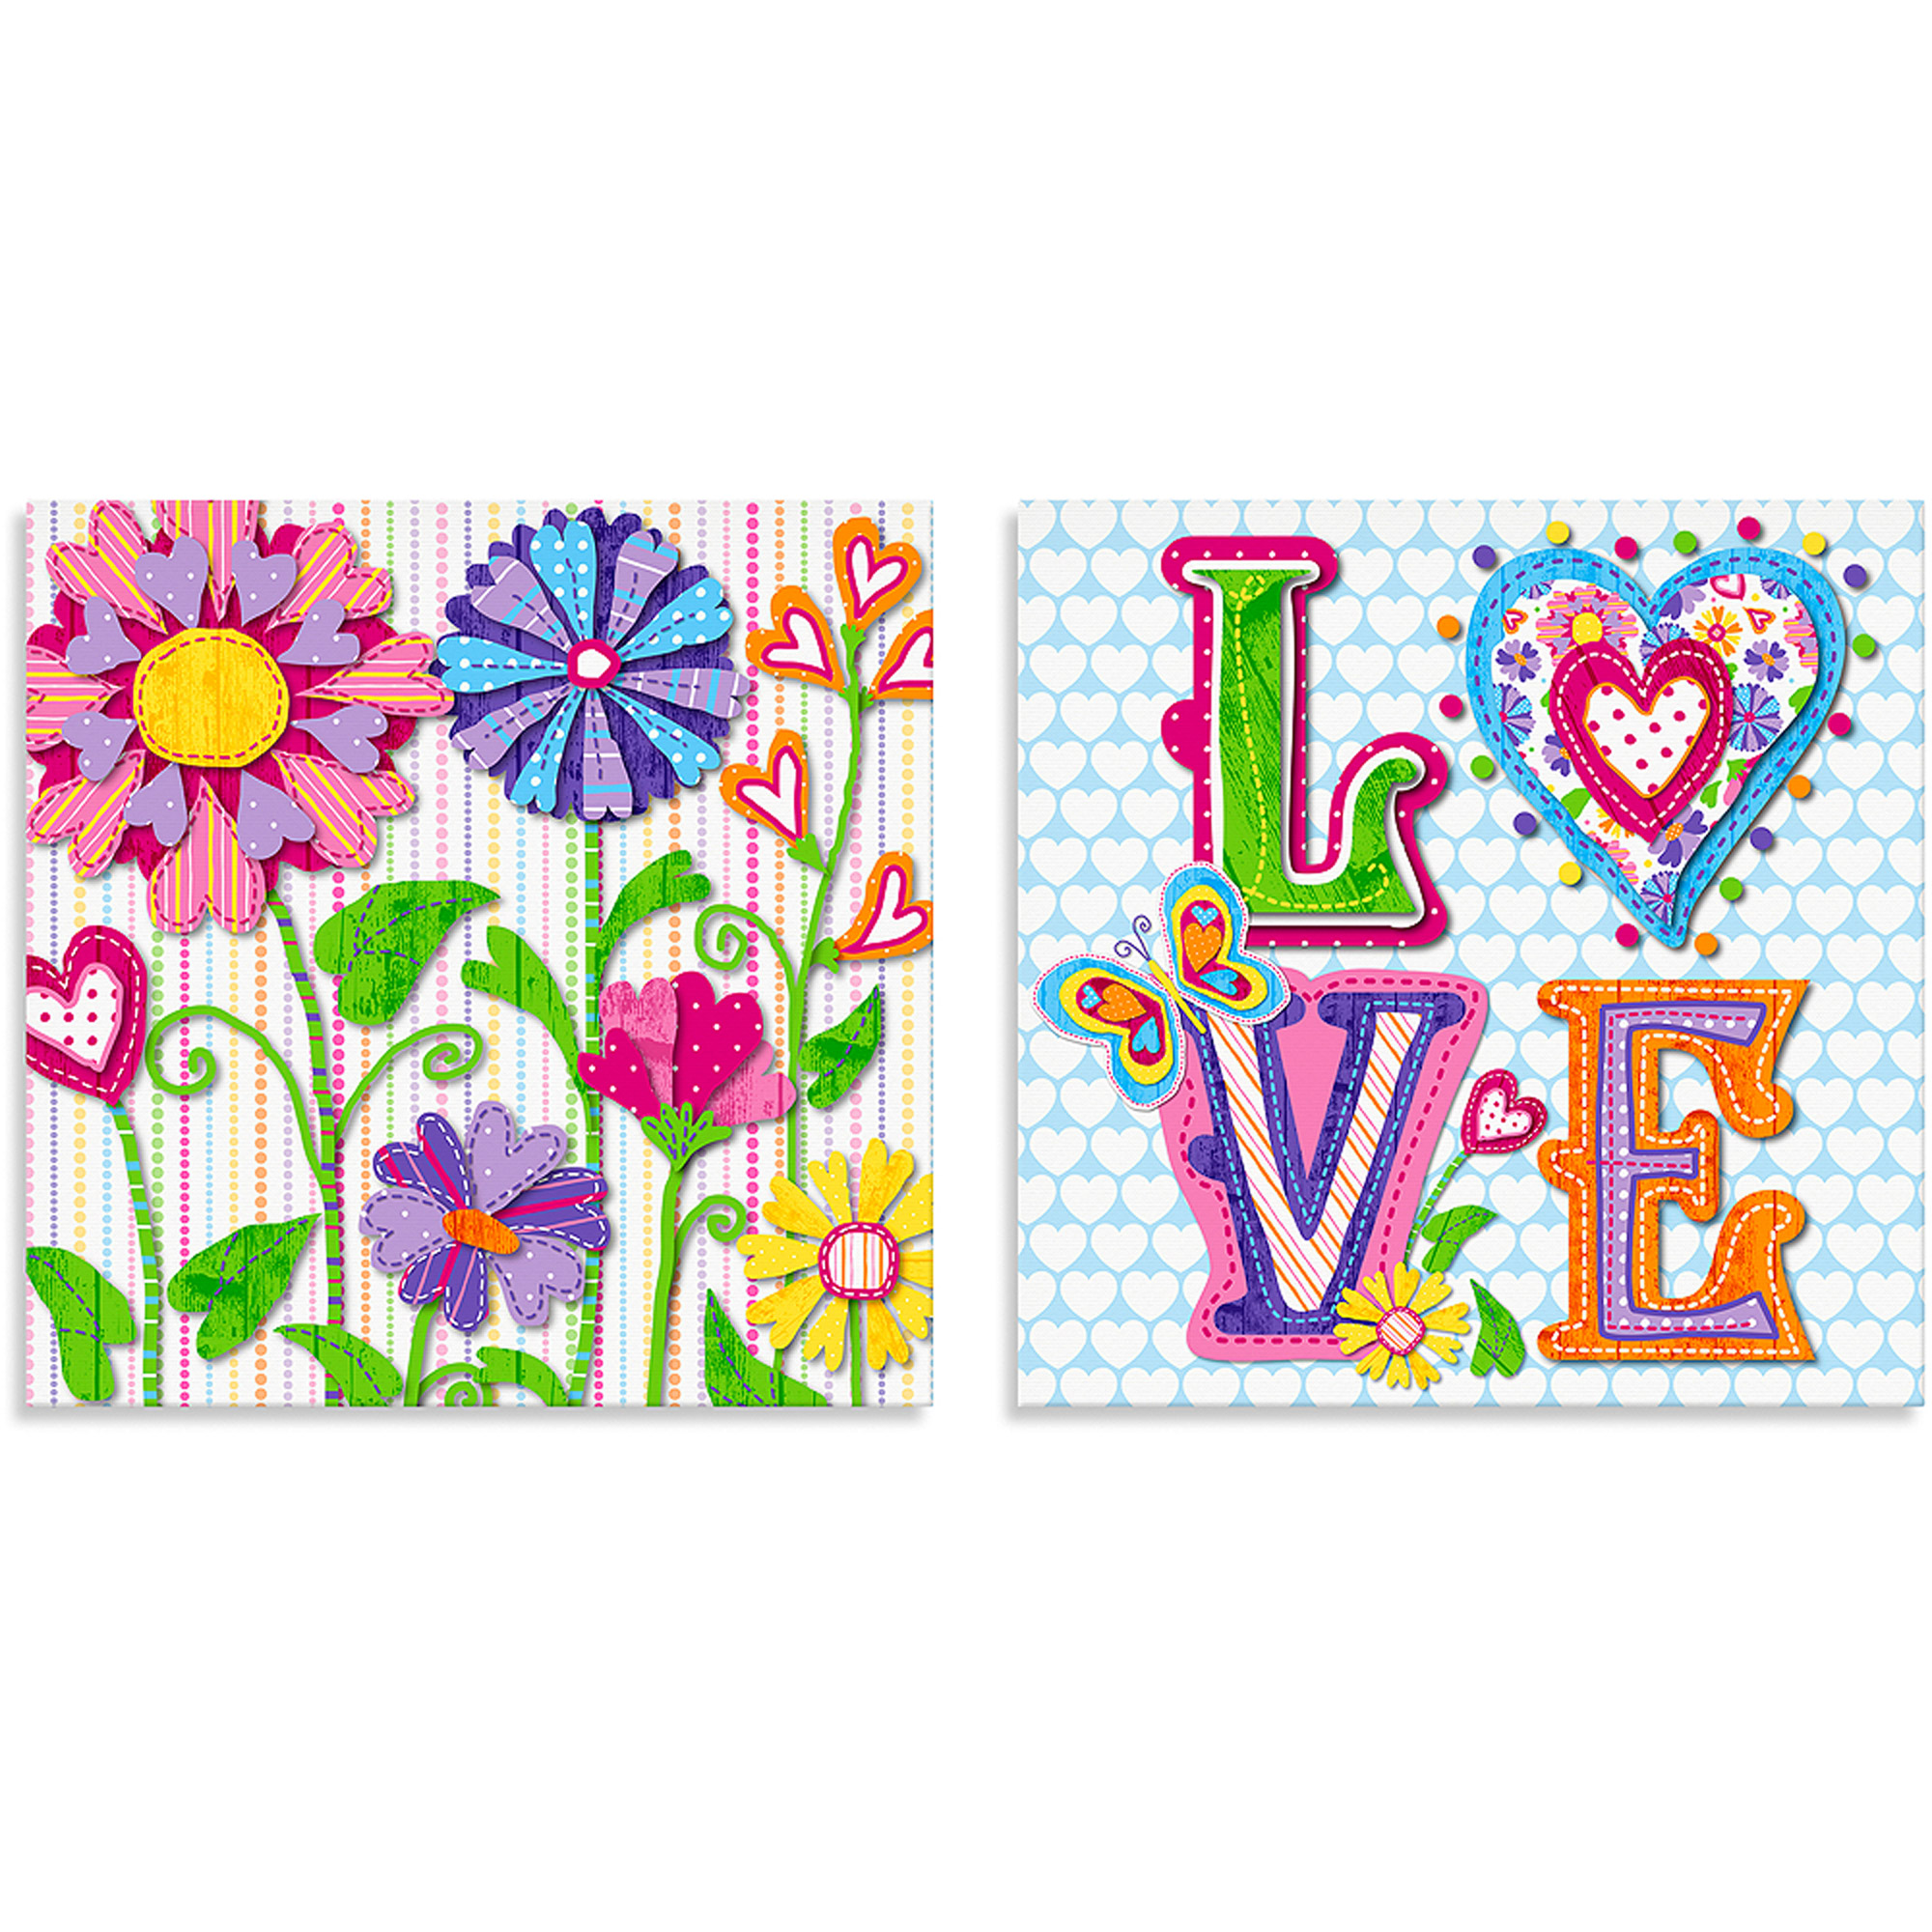 Oopsy Daisy Too Hearts Canvas Wall Art, Flowers, Set of 2